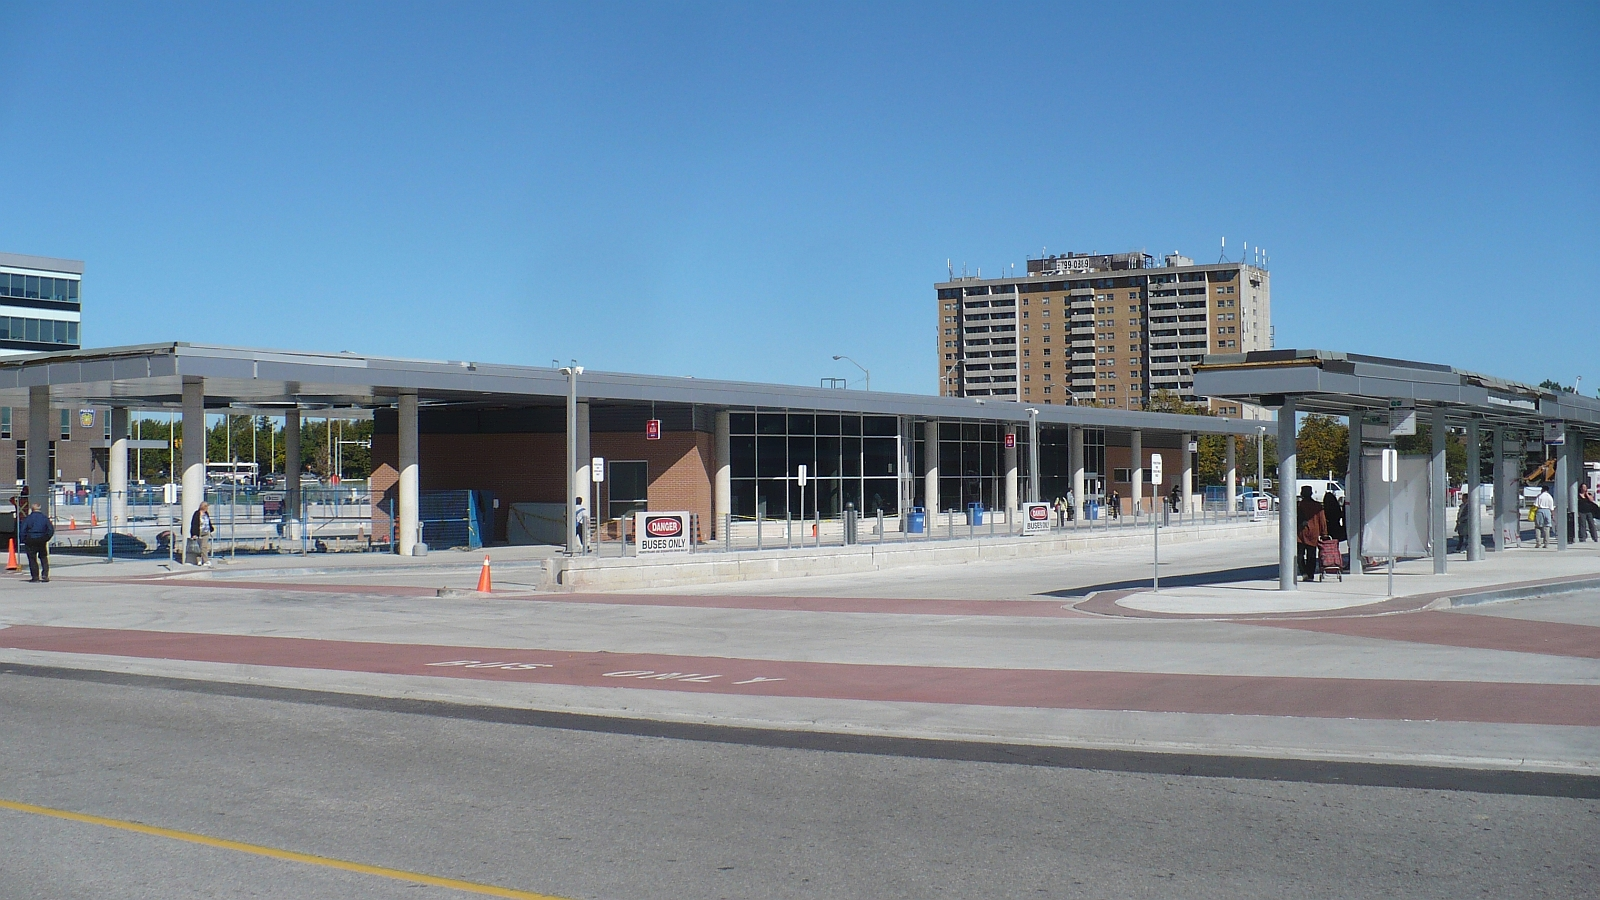 Well, the mall hasn't made too much progress, but it is barreling along, though slowly. Here's the most up to date info on what's happening with Brampton's mega mall! According to the city, a settlement was reached back in February between the City of Brampton, developers Osmington inc. and the appellants (challengers) to the city.